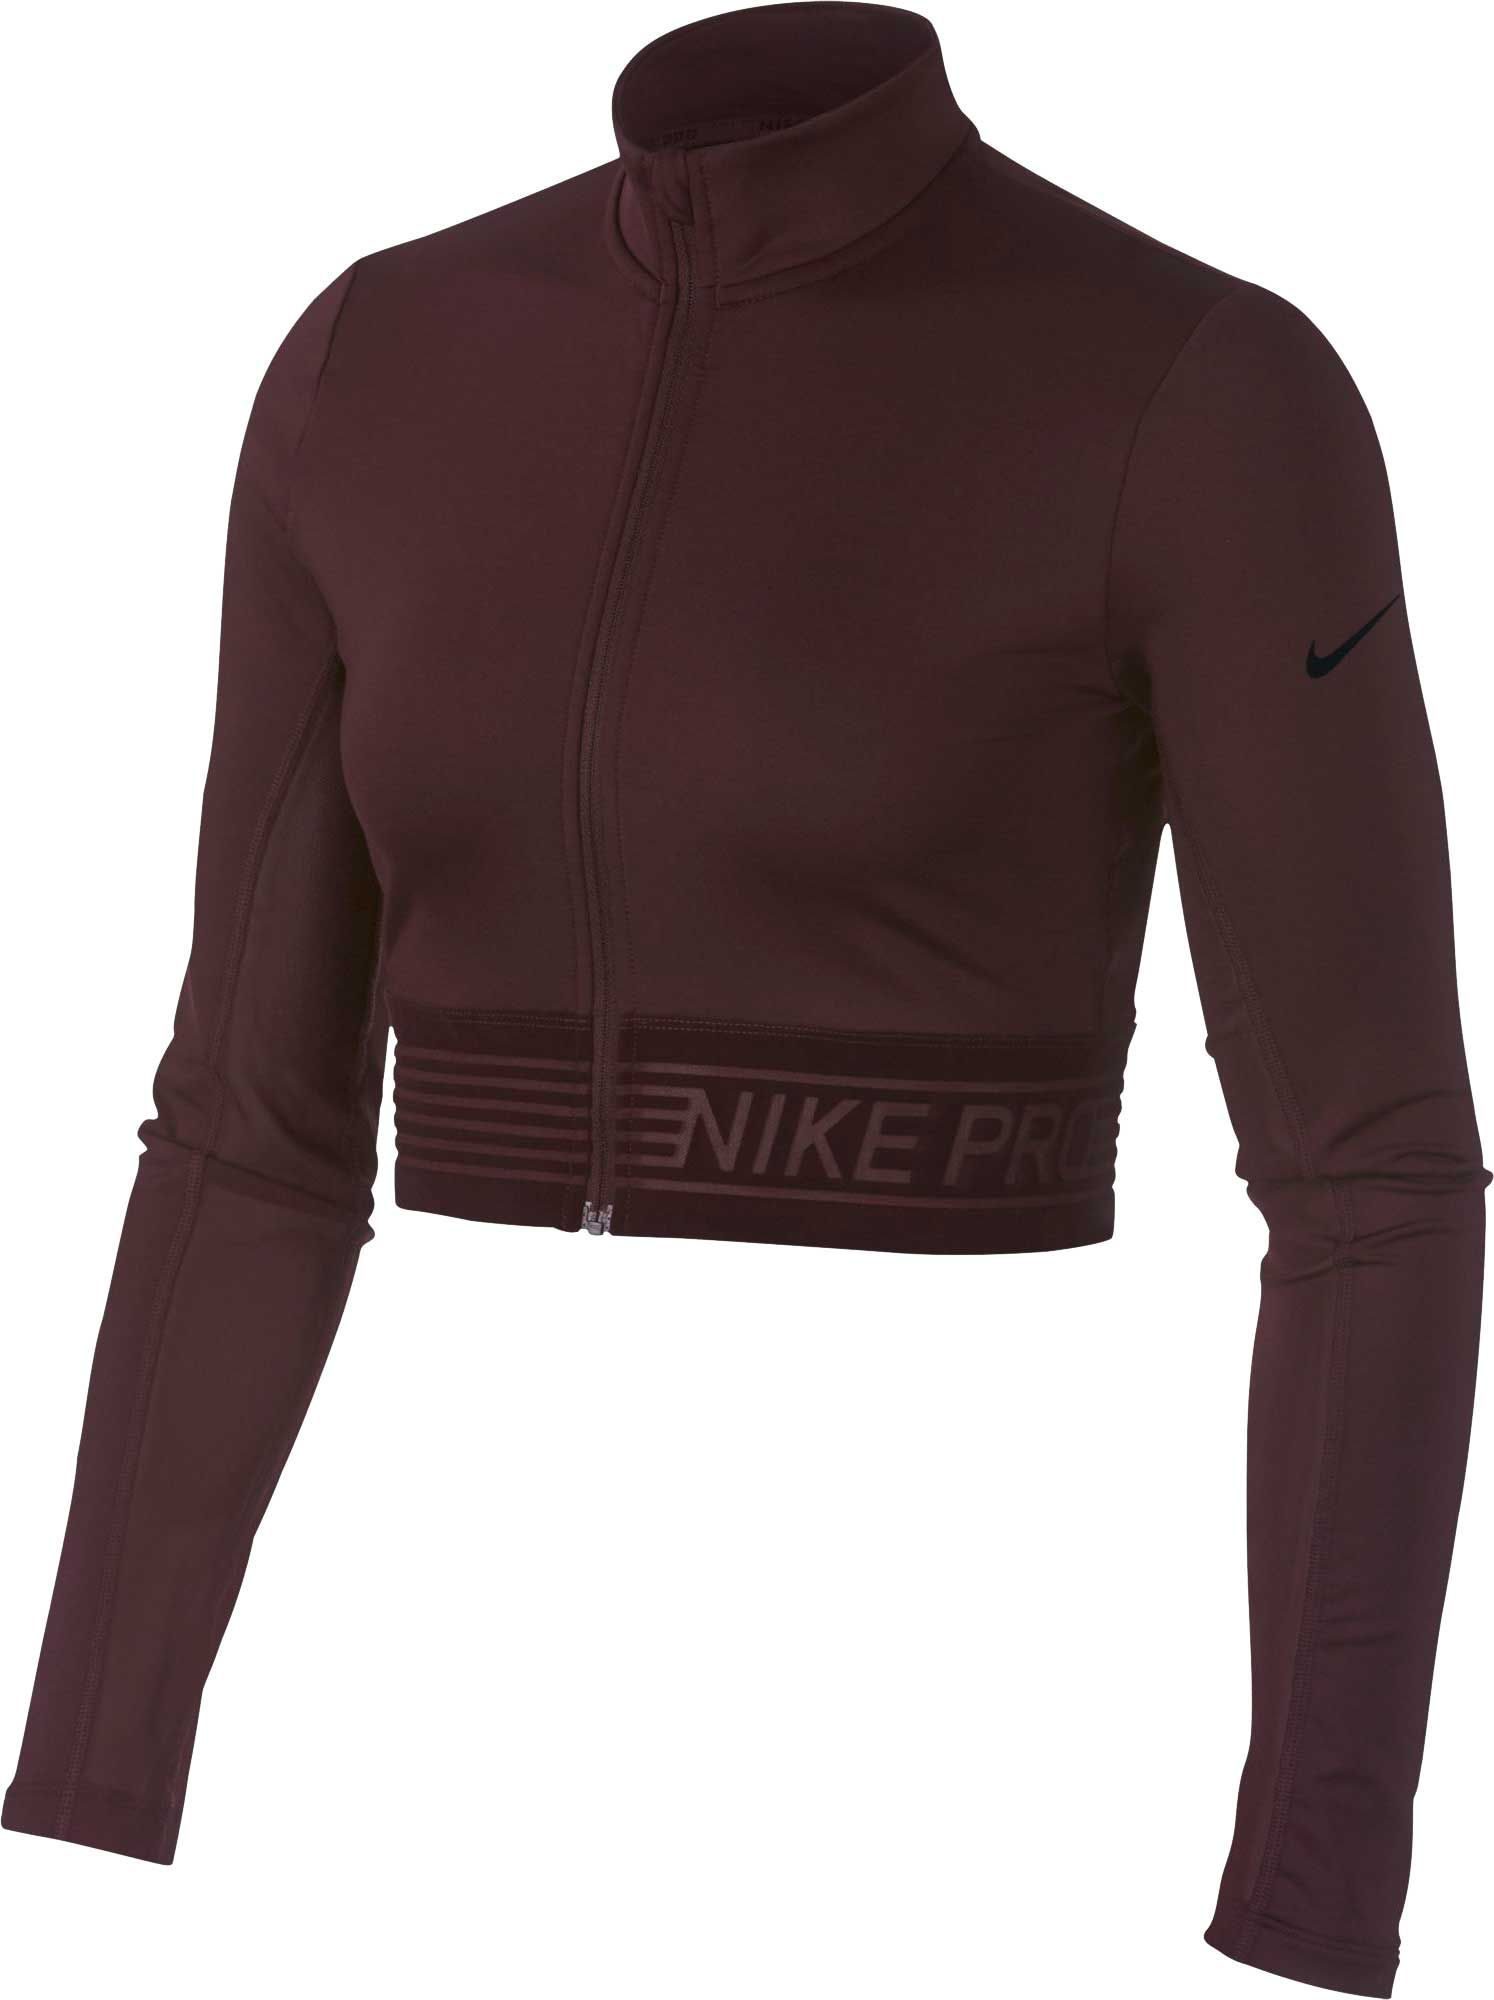 b6b517de54b00 Nike Women s Pro Long Sleeve Full-Zip Crop Top